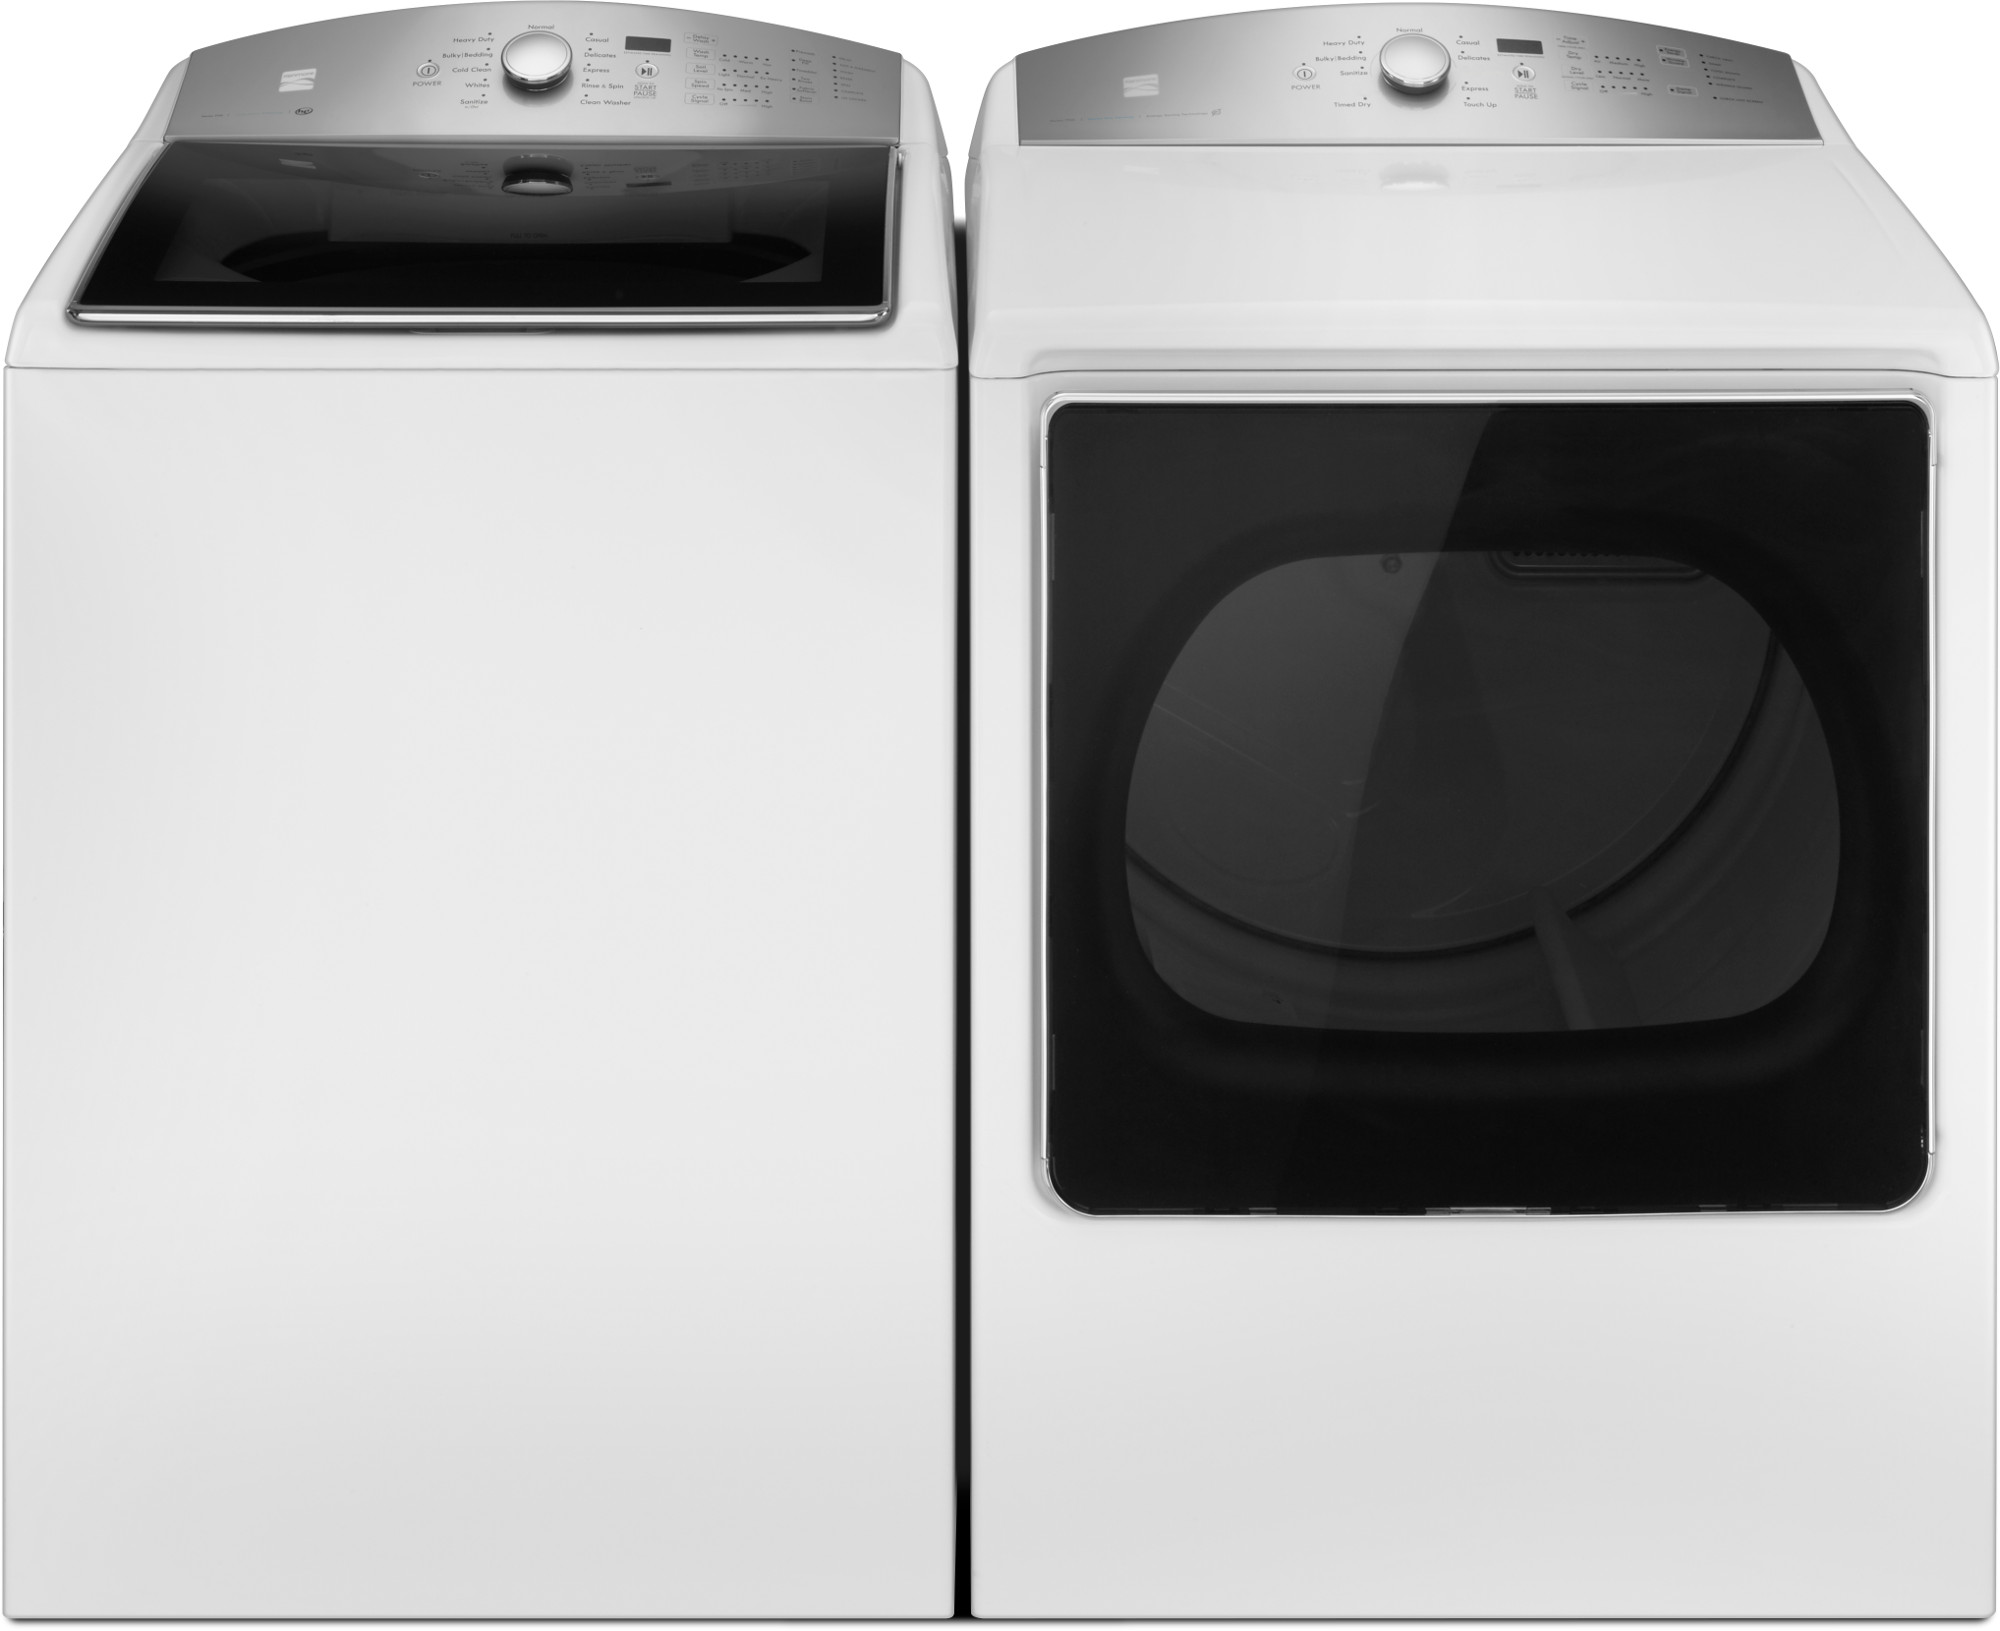 Kenmore 29132 5.3 cu. ft. Top-Load Washer w/ Exclusive Triple Action Impeller - White